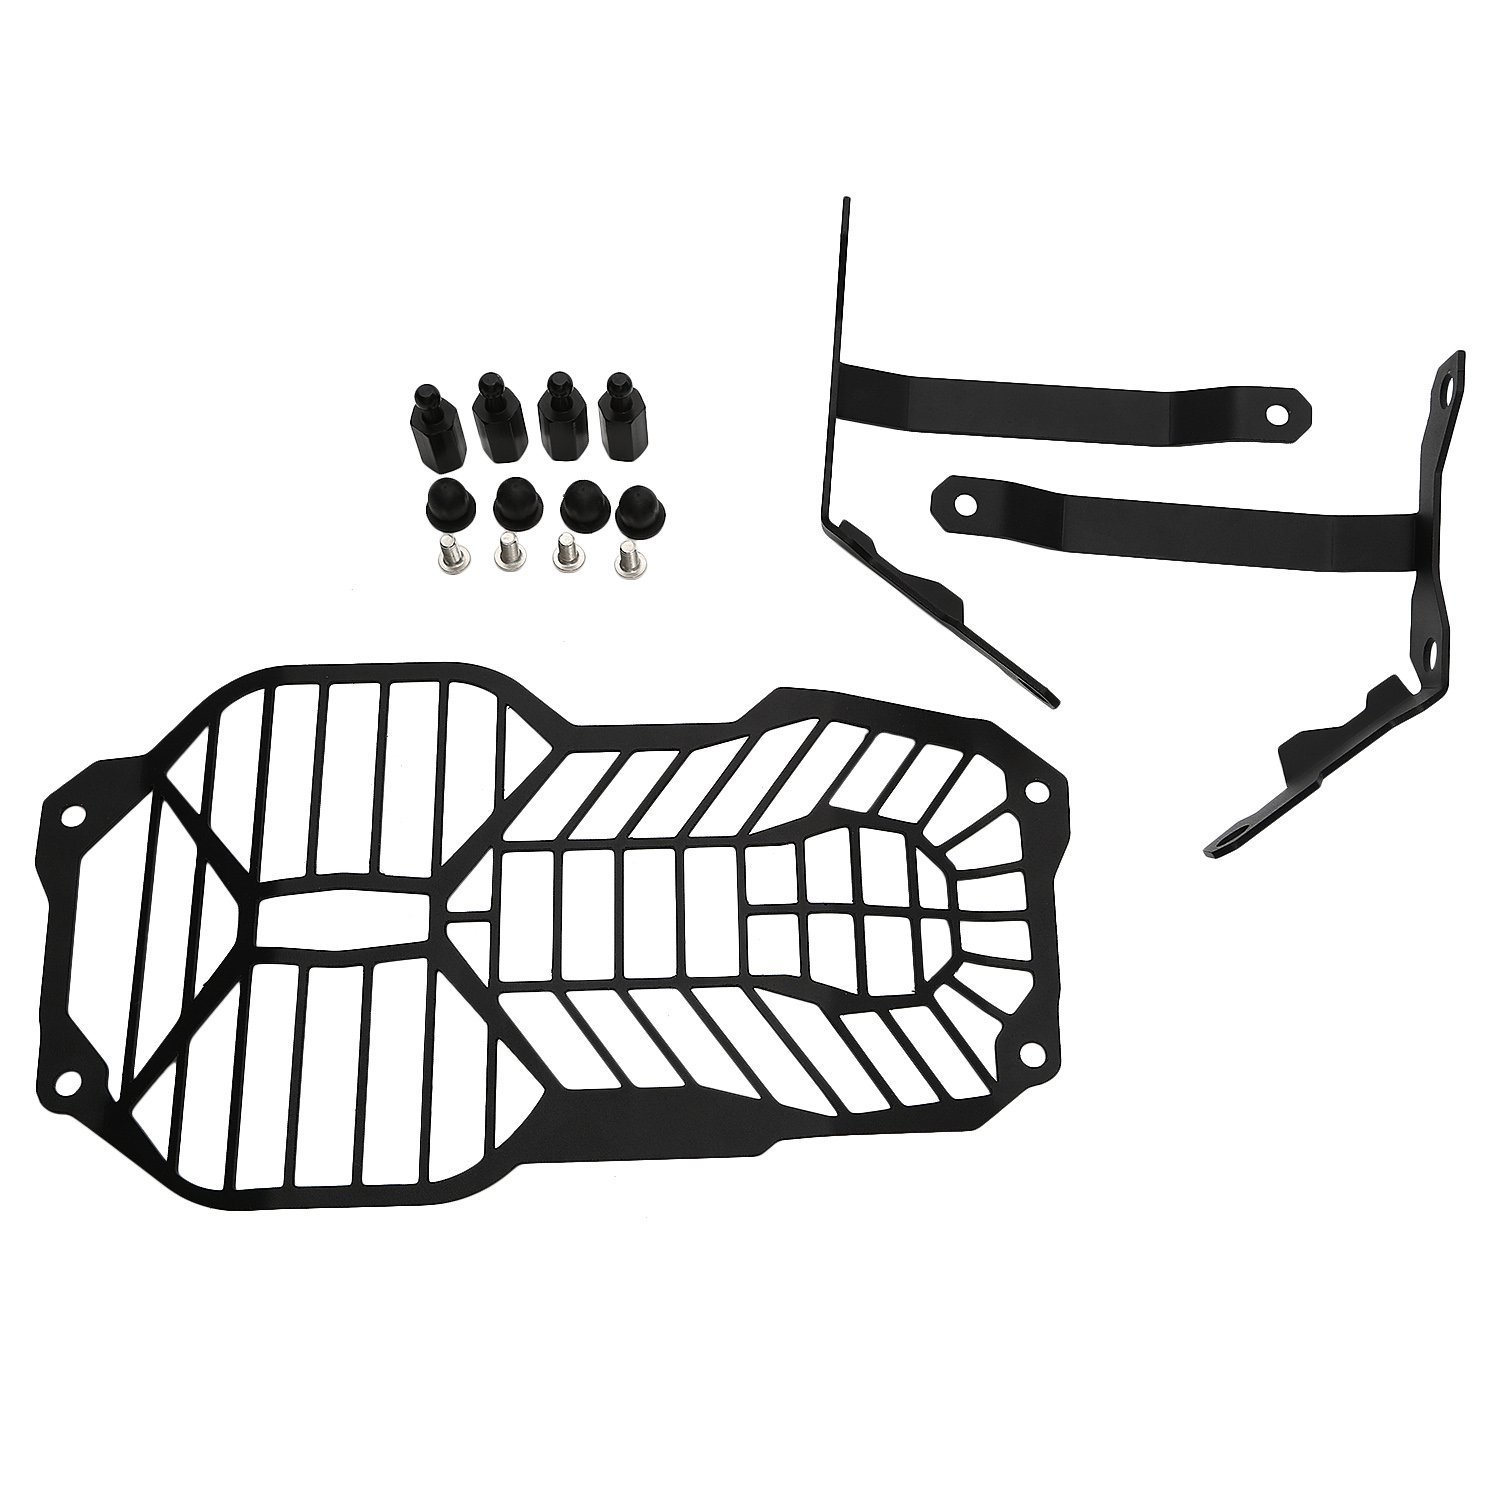 CICMOD Aluminum Front Headlight Grille Protector Cover with Mounting Bracket Kit For BMW F650GS F700GS F800GS from 2008 to 2017